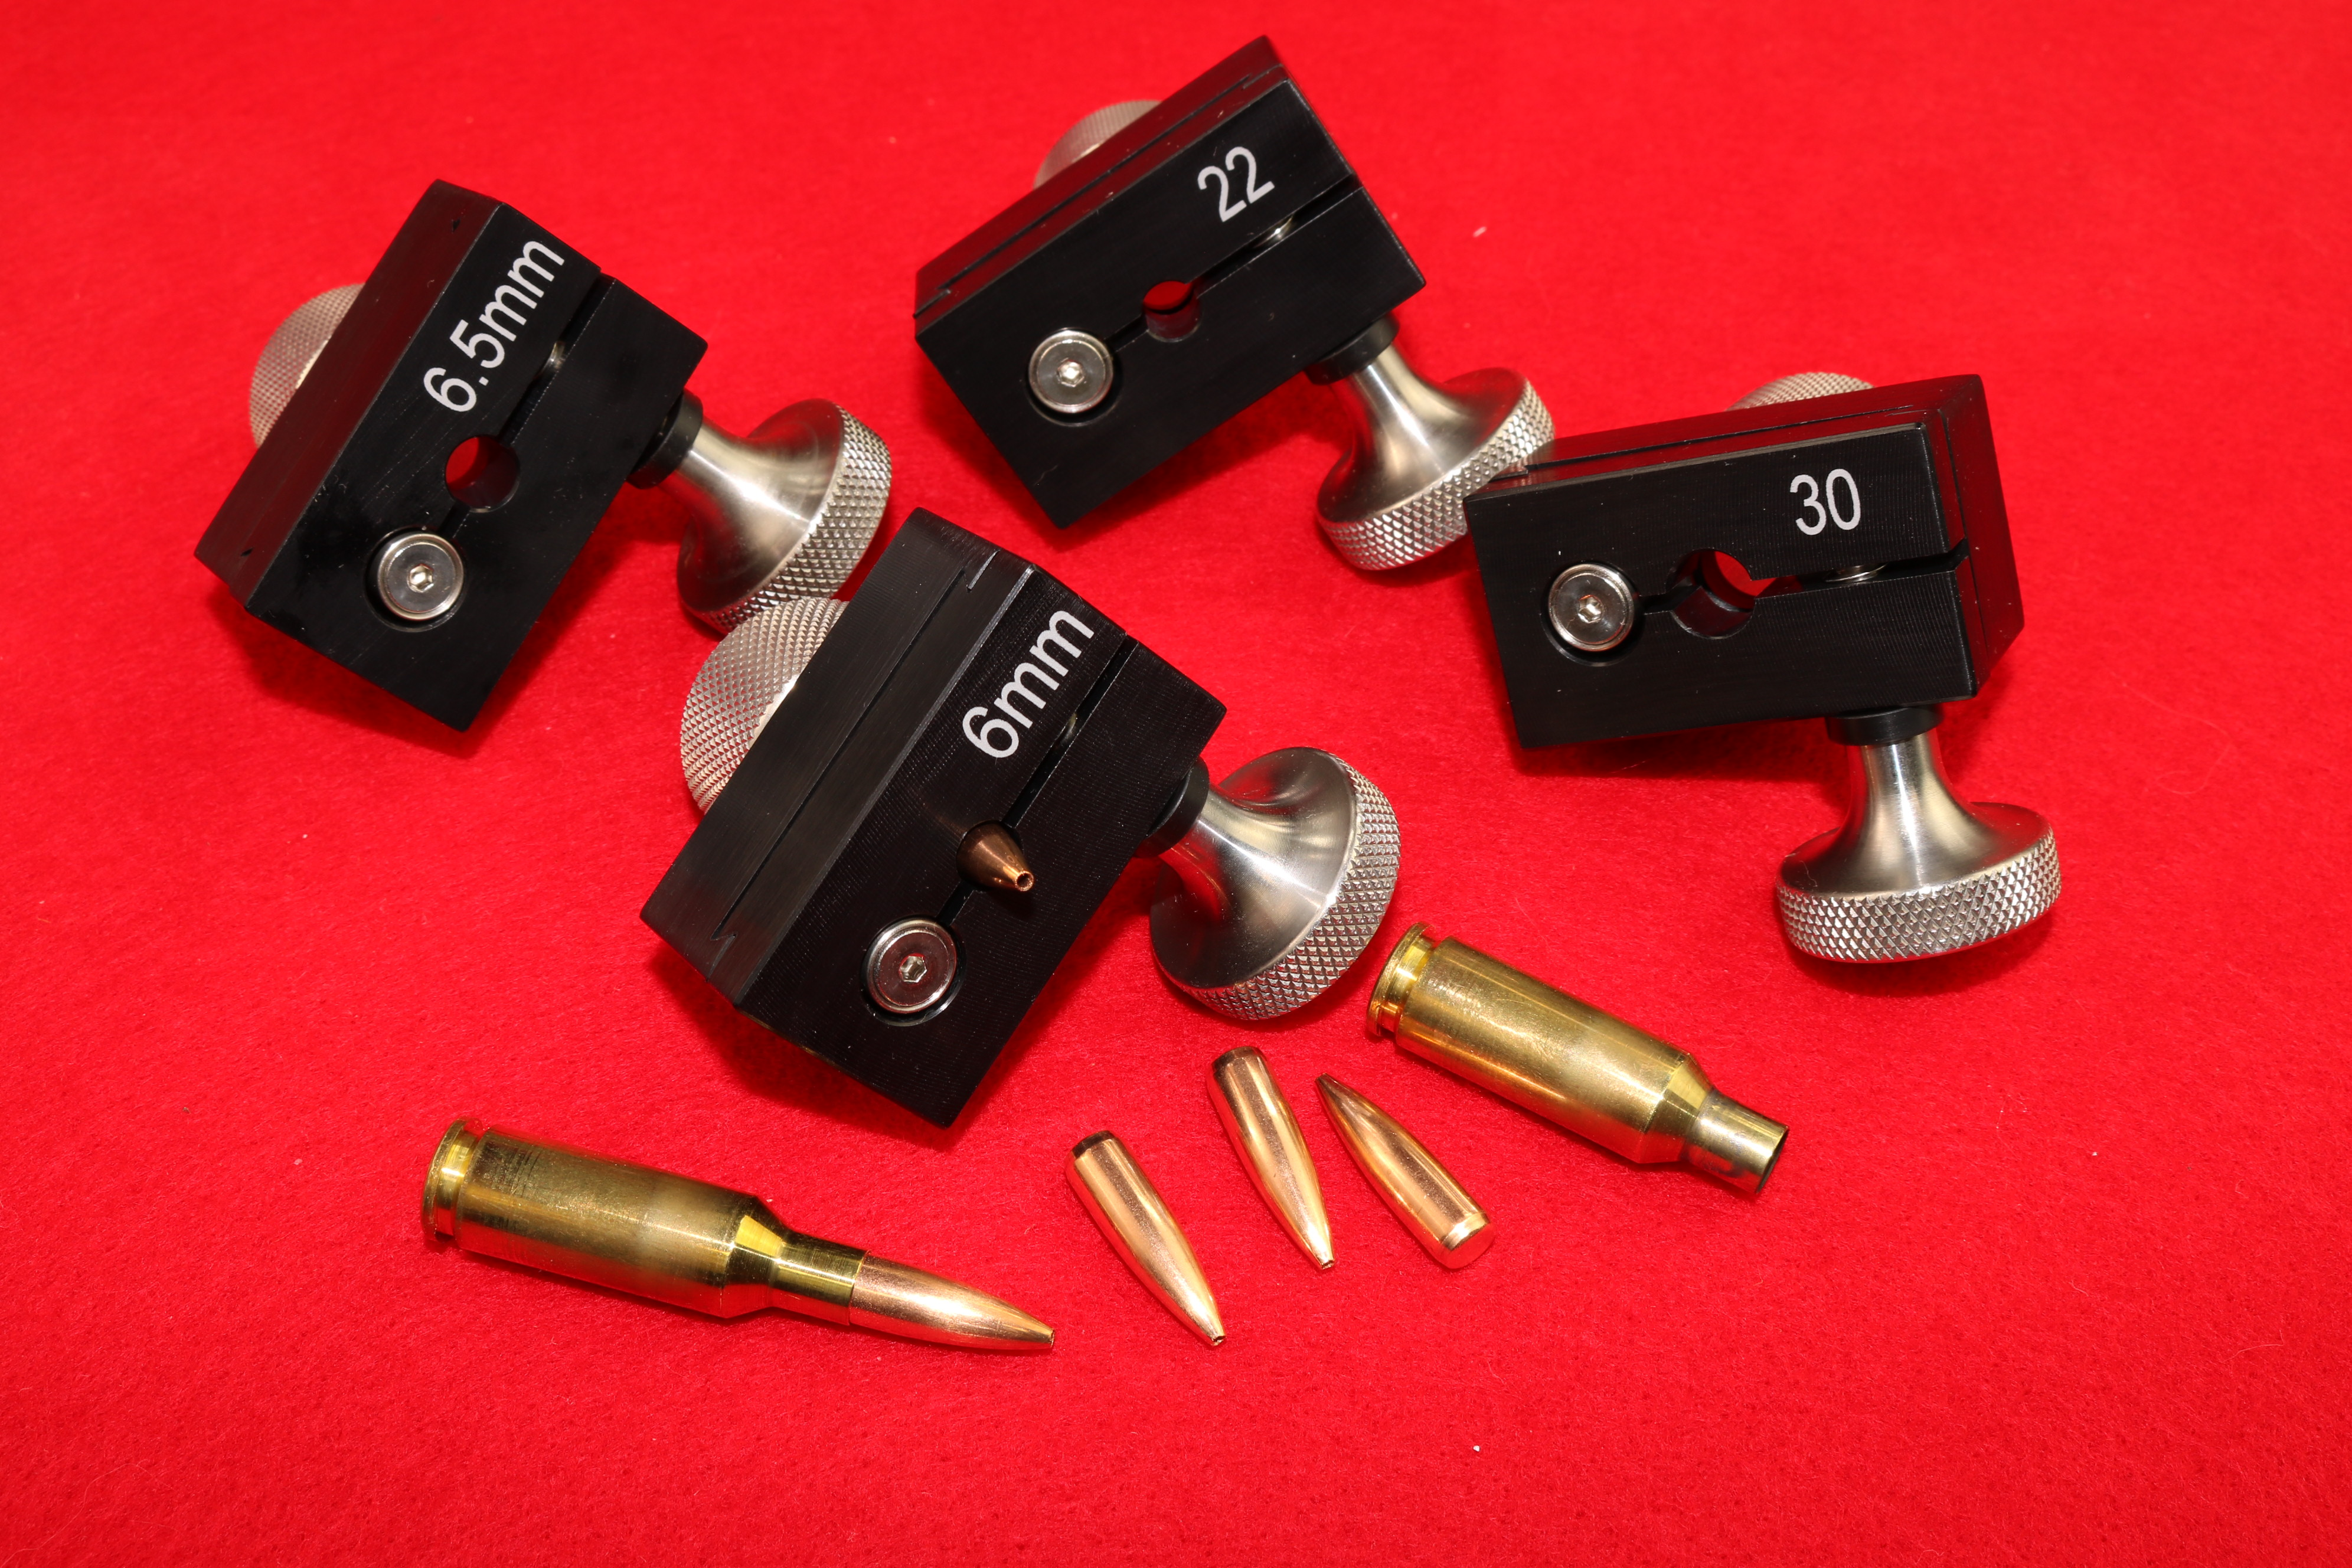 New PMA Tool Bullet Pullers